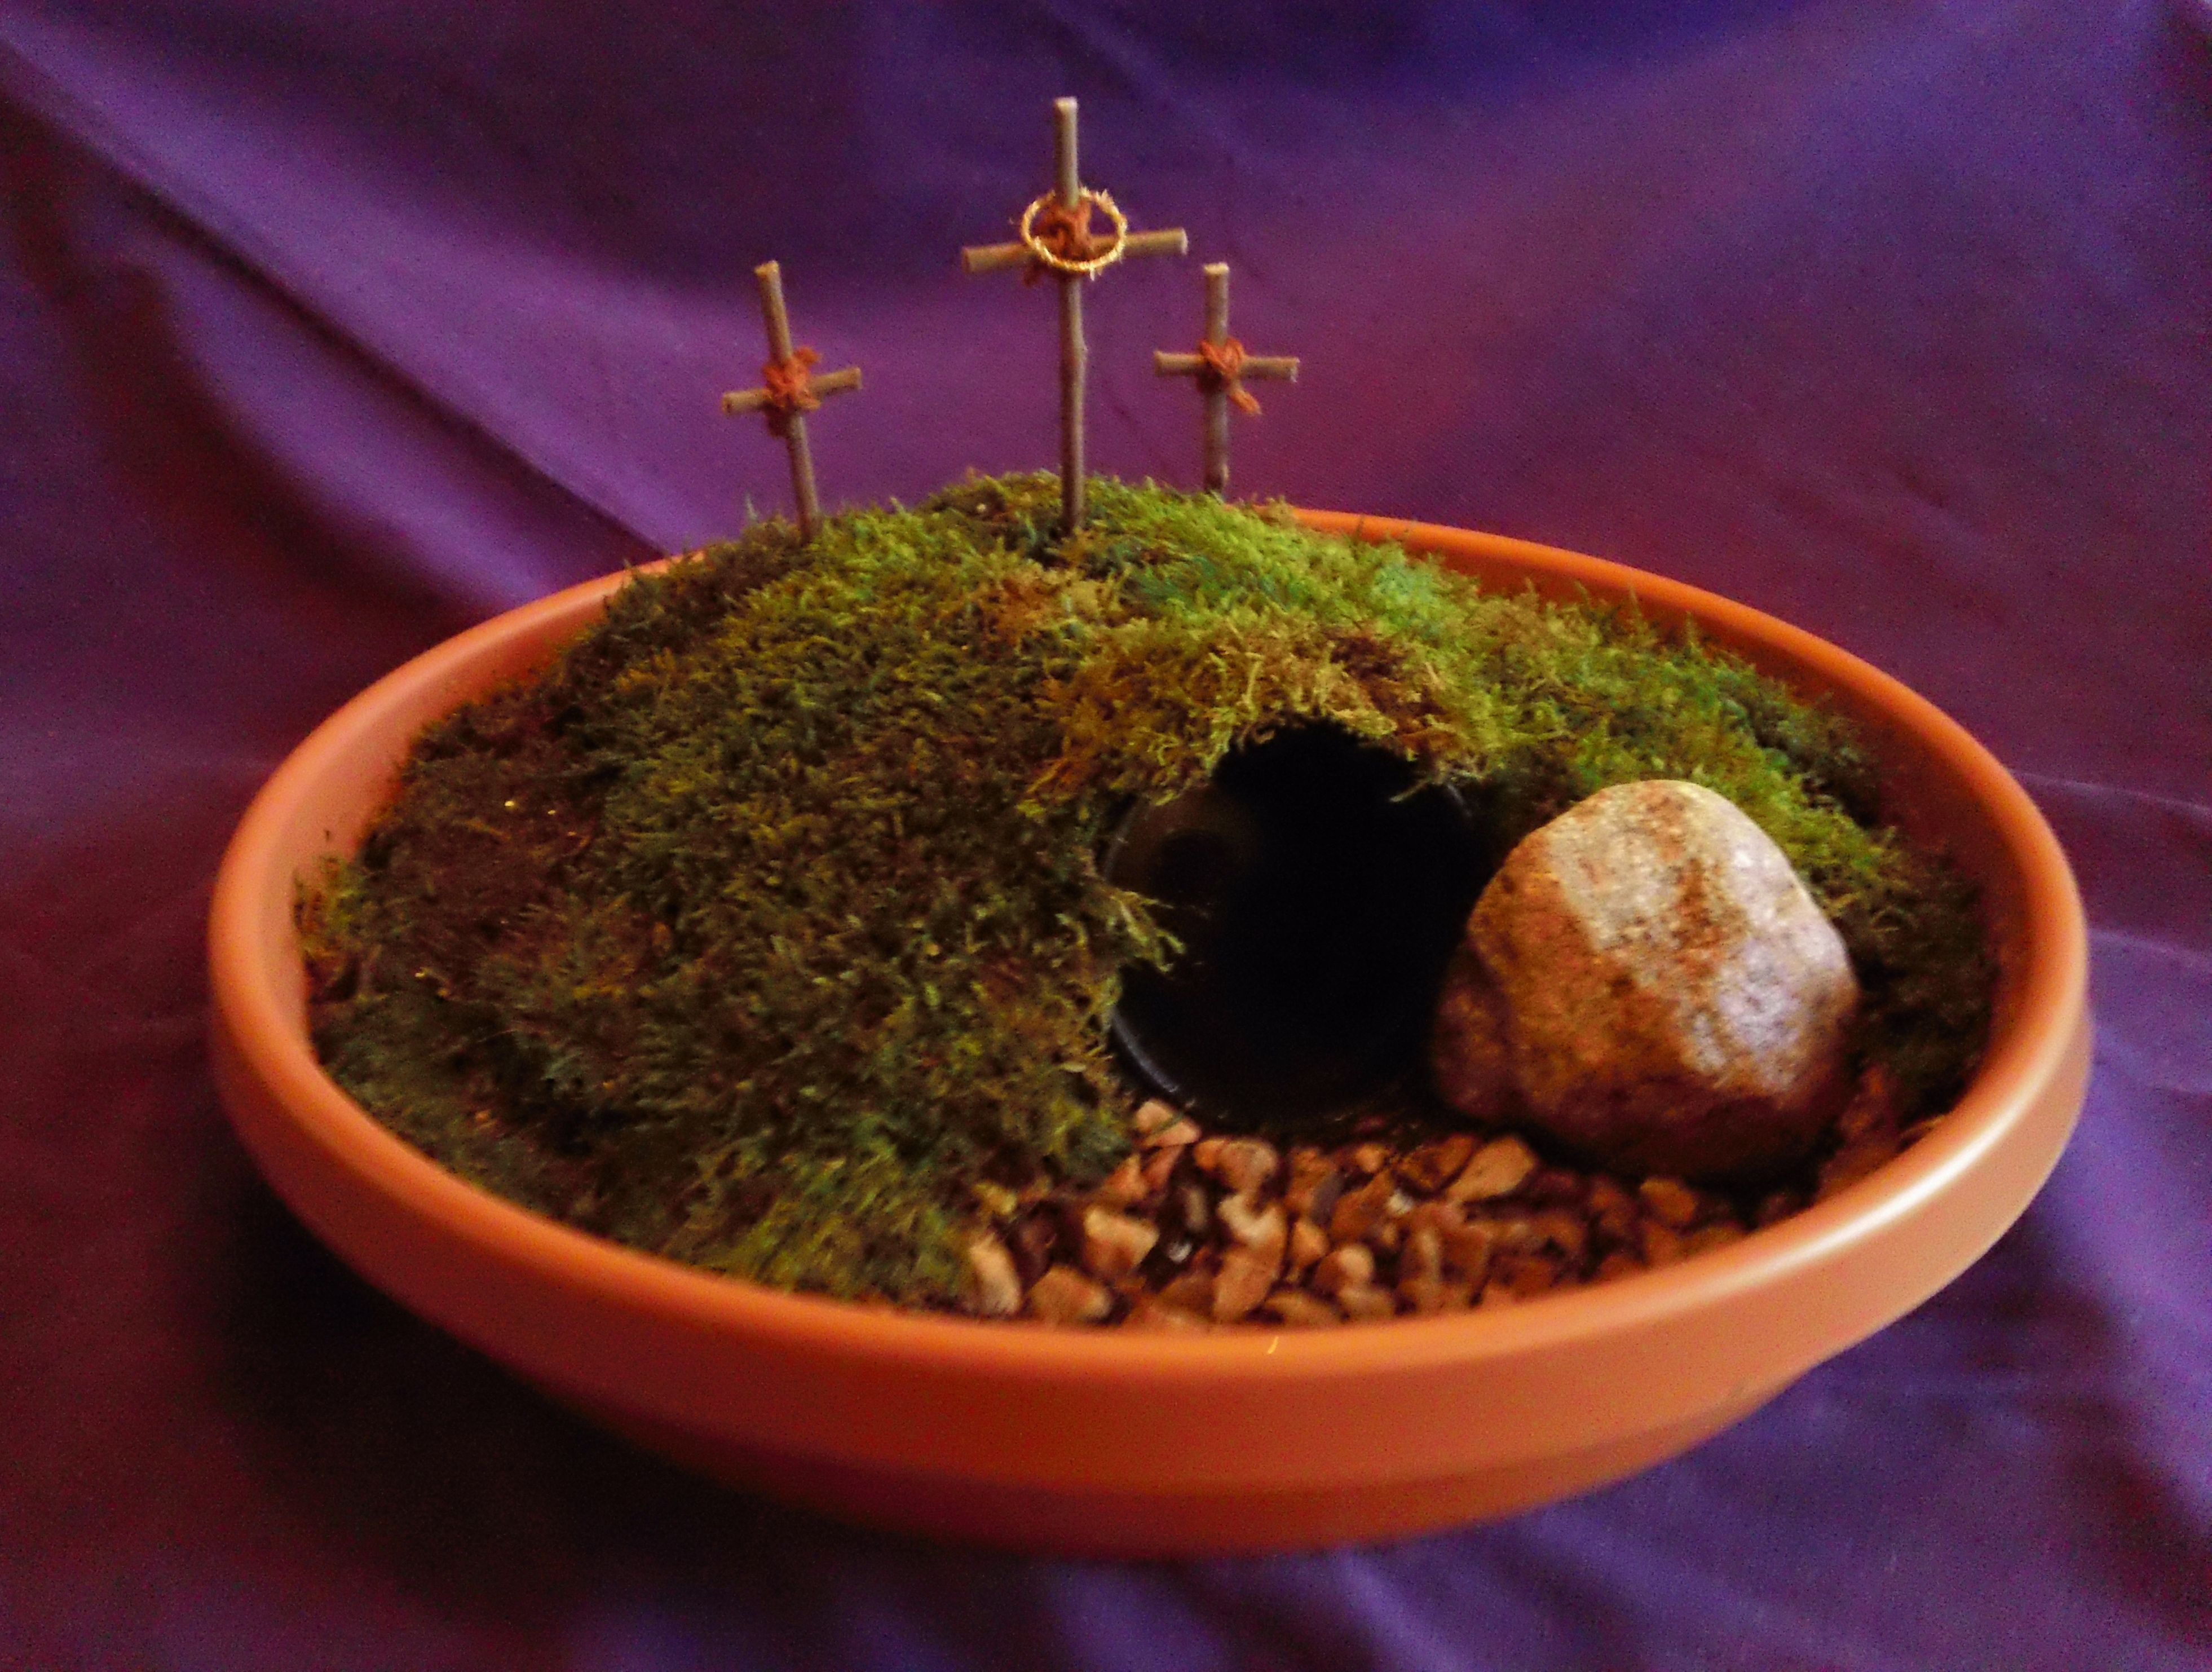 Easter garden easter garden easter and gardens easter garden negle Image collections